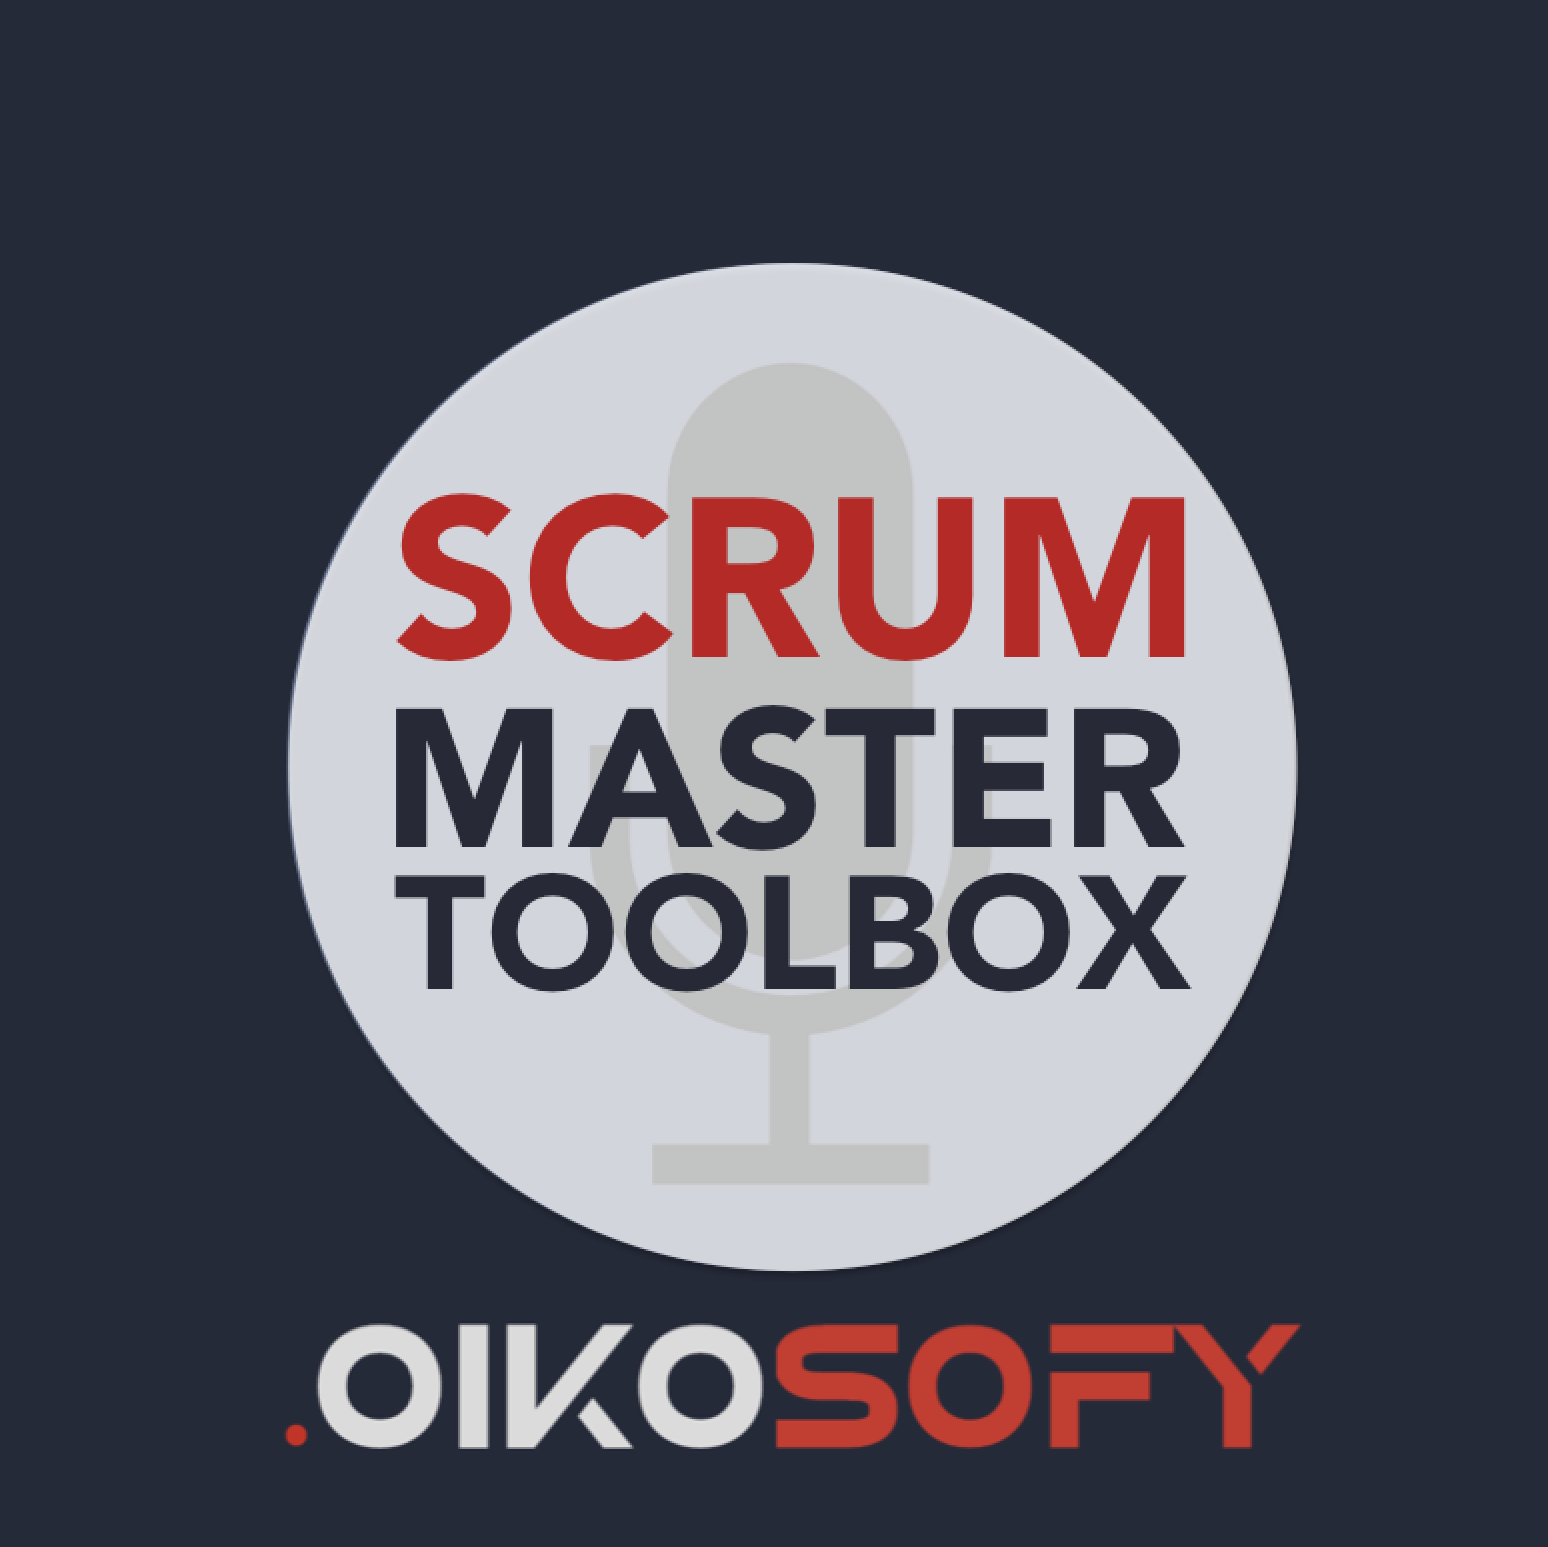 Scrum Master Toolbox Podcast show art